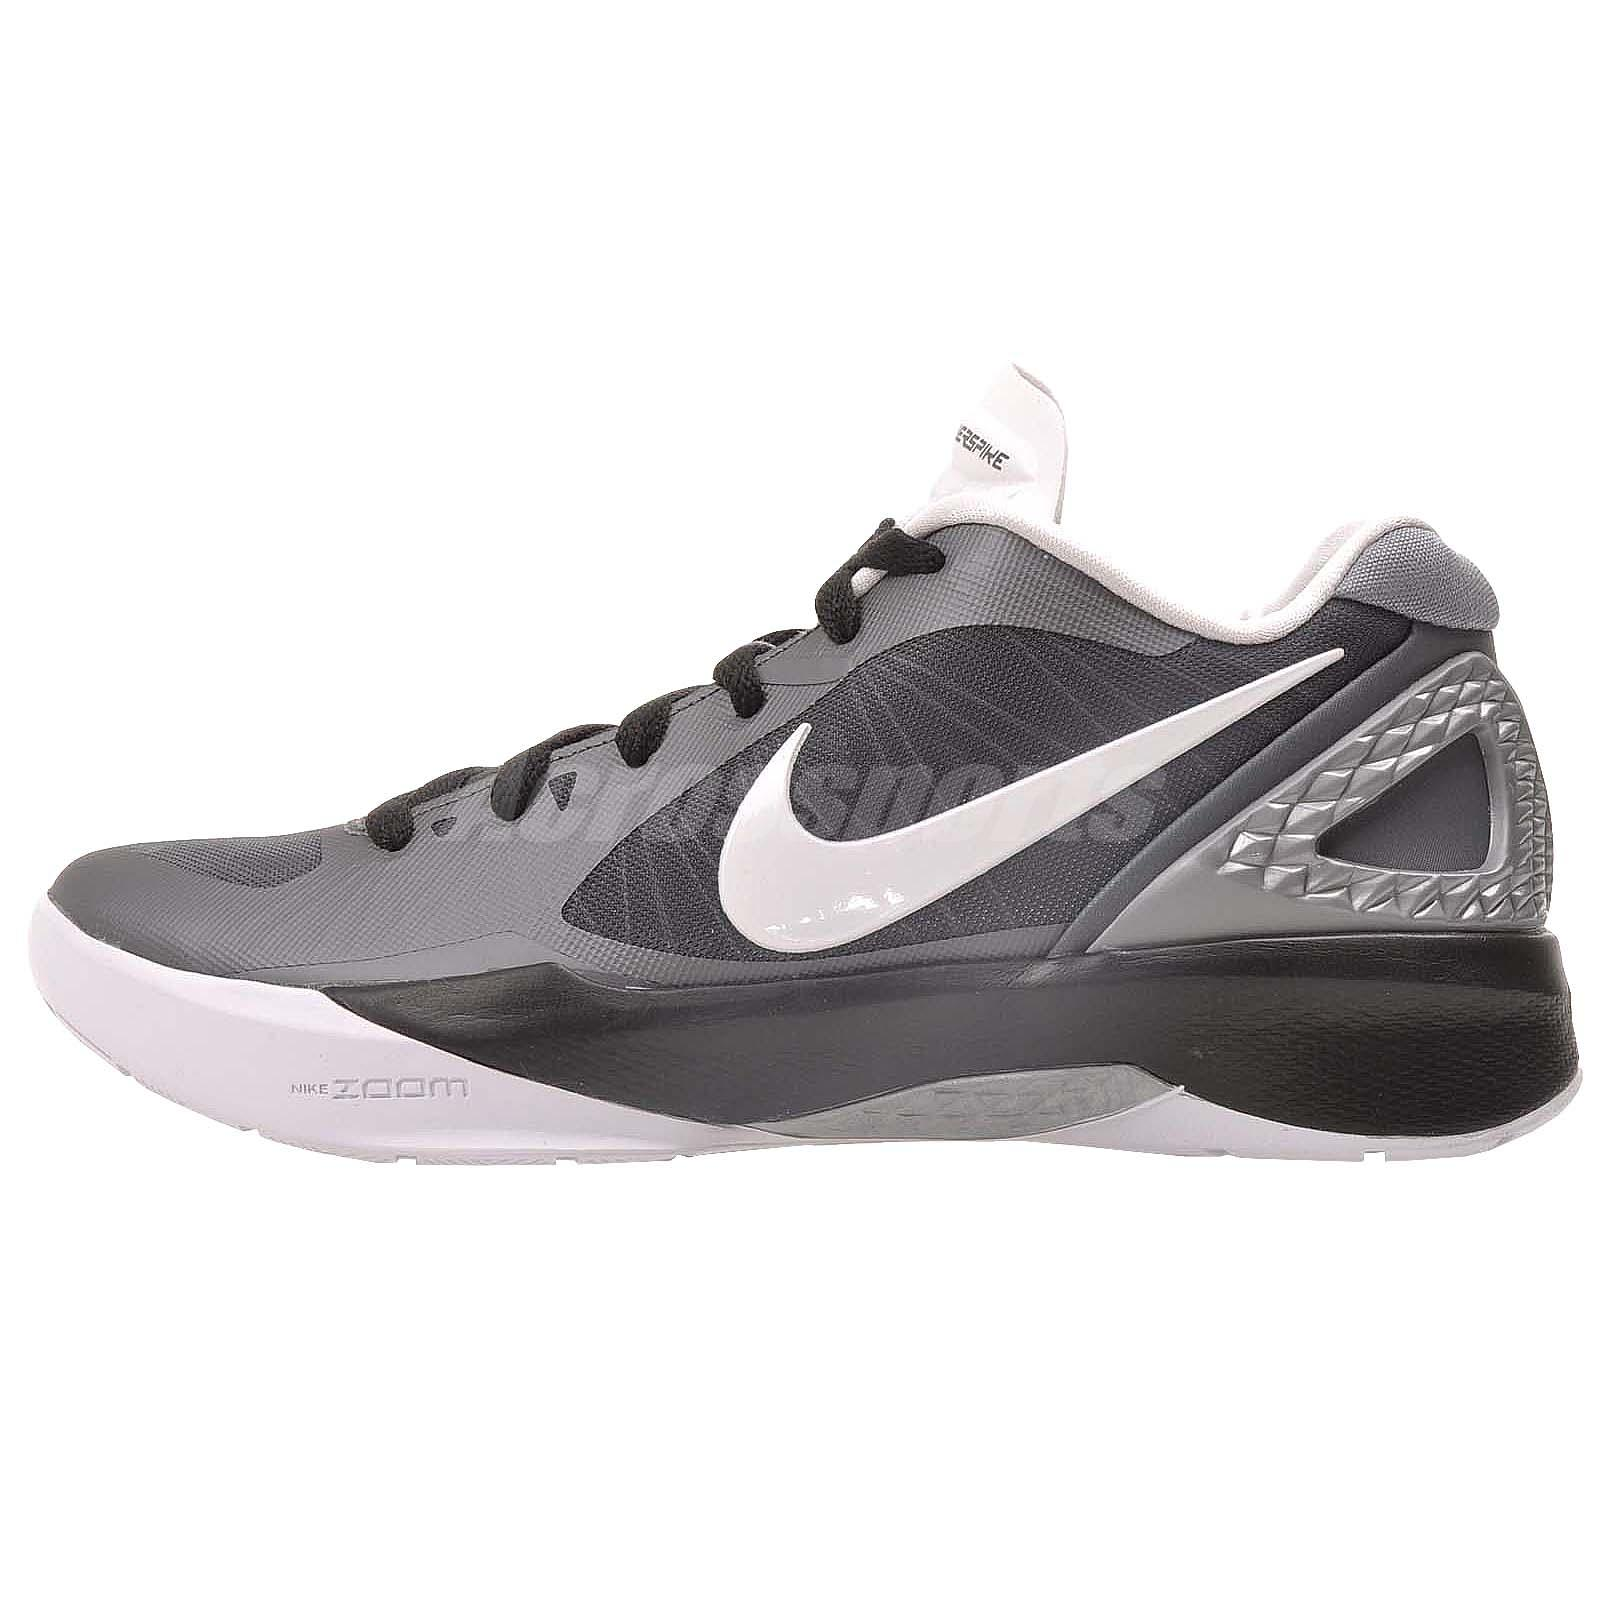 Permalink to Nike Womens Volleyball Shoes